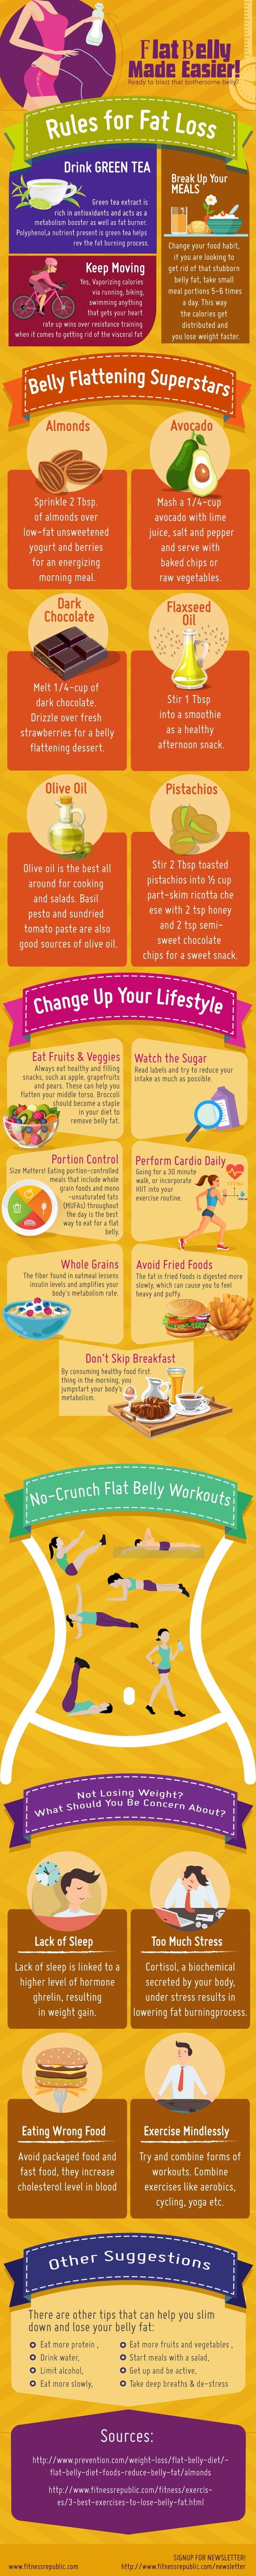 Gaining a flat belly can be a real struggle. Often, the difficulty is because of the belief we put in misconceptions. Here's how to get a flat belly.